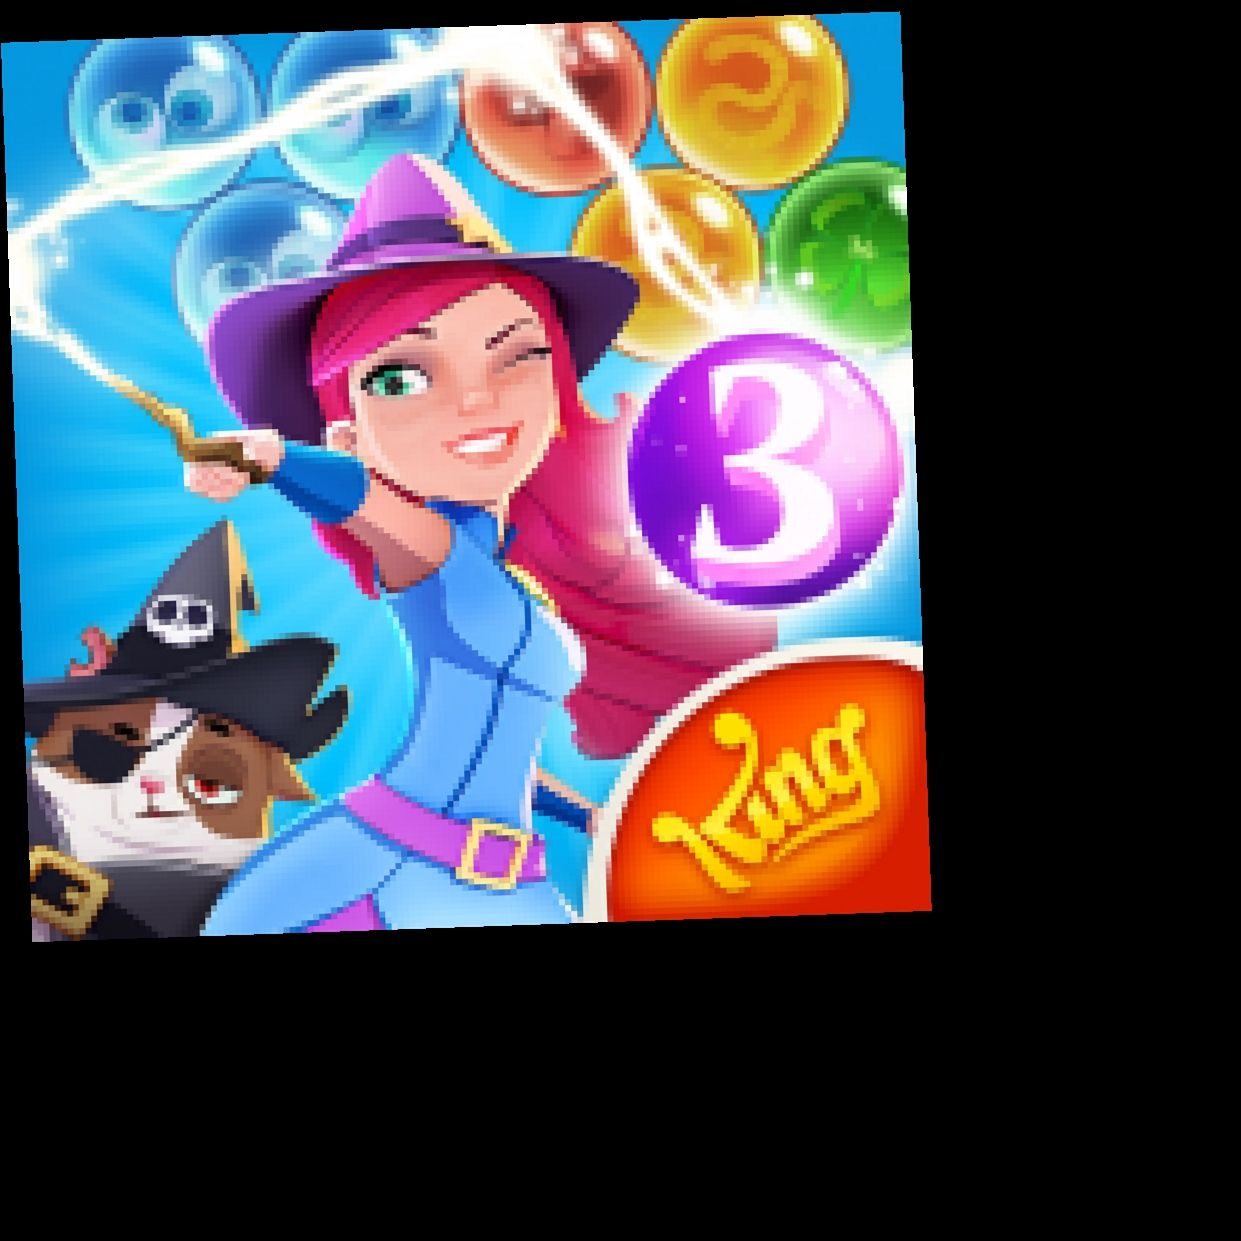 Bubble Witch 3 Saga Hack Mod Apk Download In 2020 Download Hacks Tool Hacks Witch